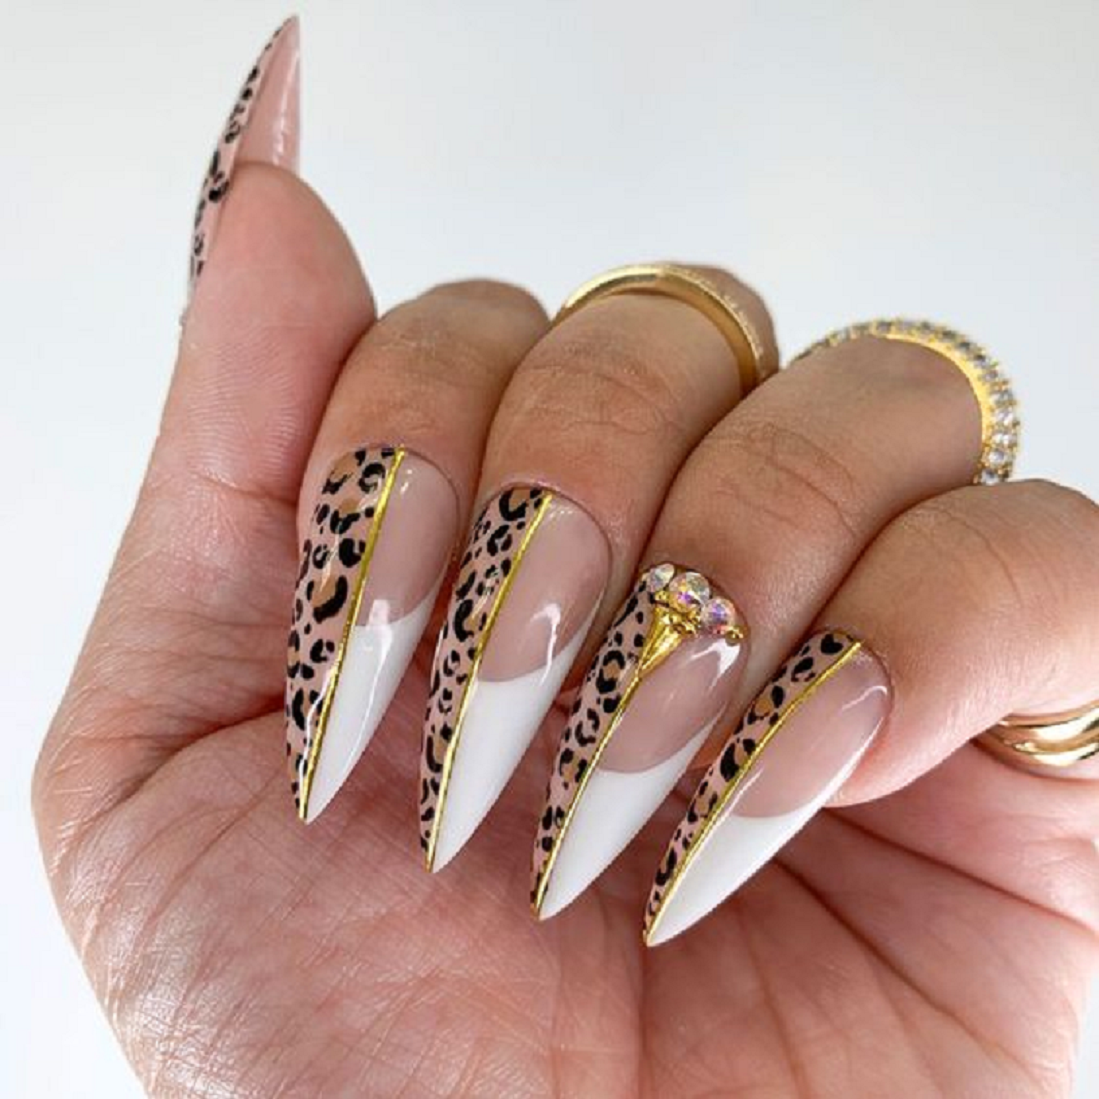 Bling fingernails Fake Long Nails with Animal Print Pattern with Rhinestones